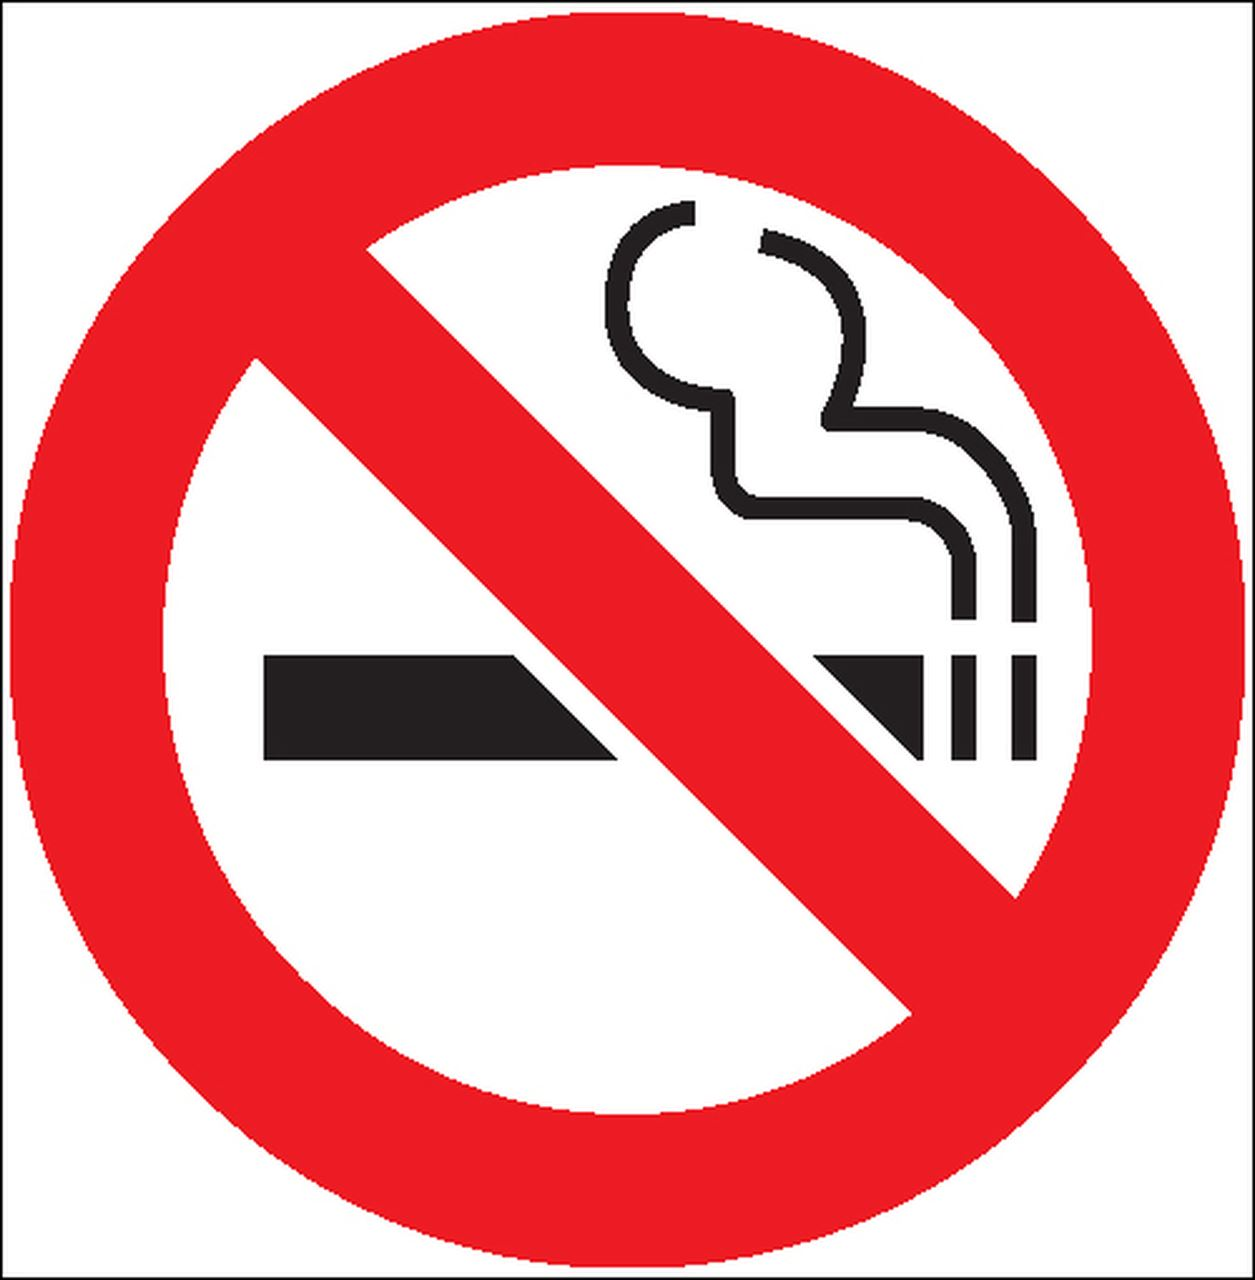 No smoking symbol, red circle with slash cutting through a representation of a cigarette